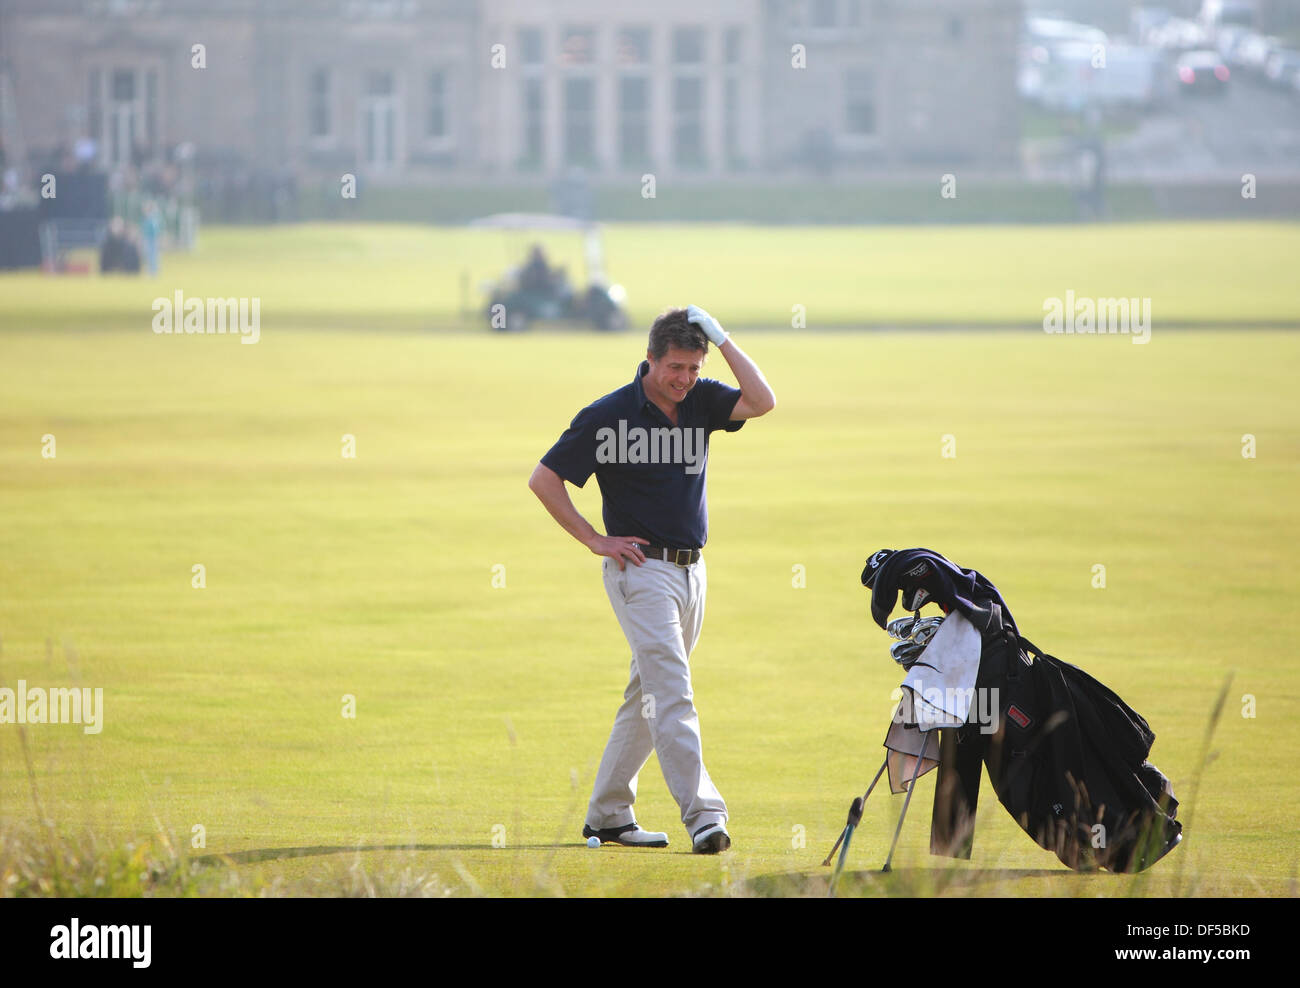 St Andrews, Scotland, UK, 28h September 2013, Hugh Grant plays down the 1st fairway at The Old Course St Andrews The Dunhill Cup 2013 Credit:  Derek Allan/Alamy Live News - Stock Image